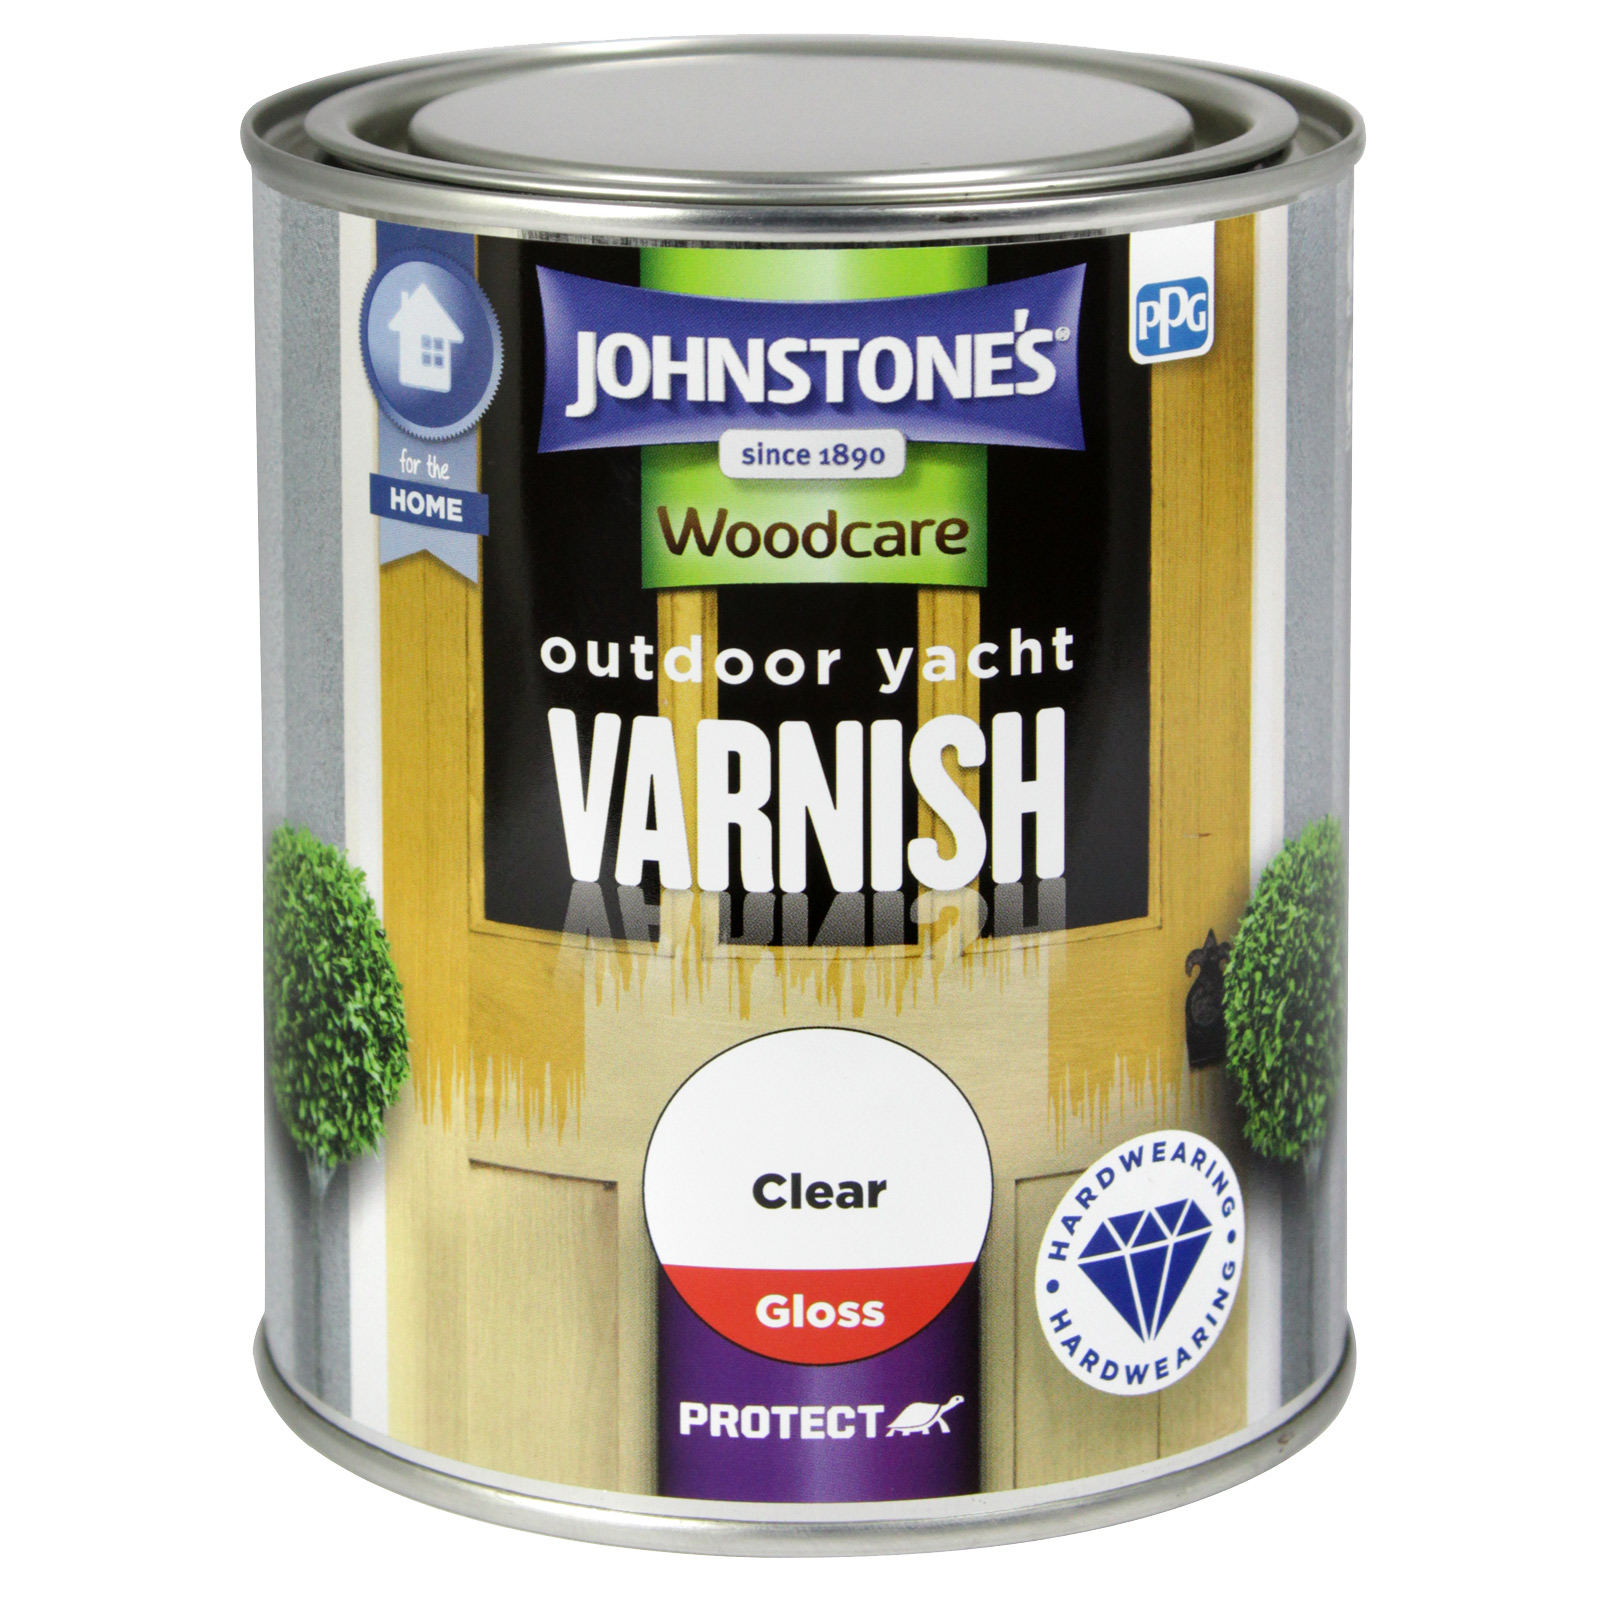 OUTDOOR YACHT VARNISH 750ML CLEAR